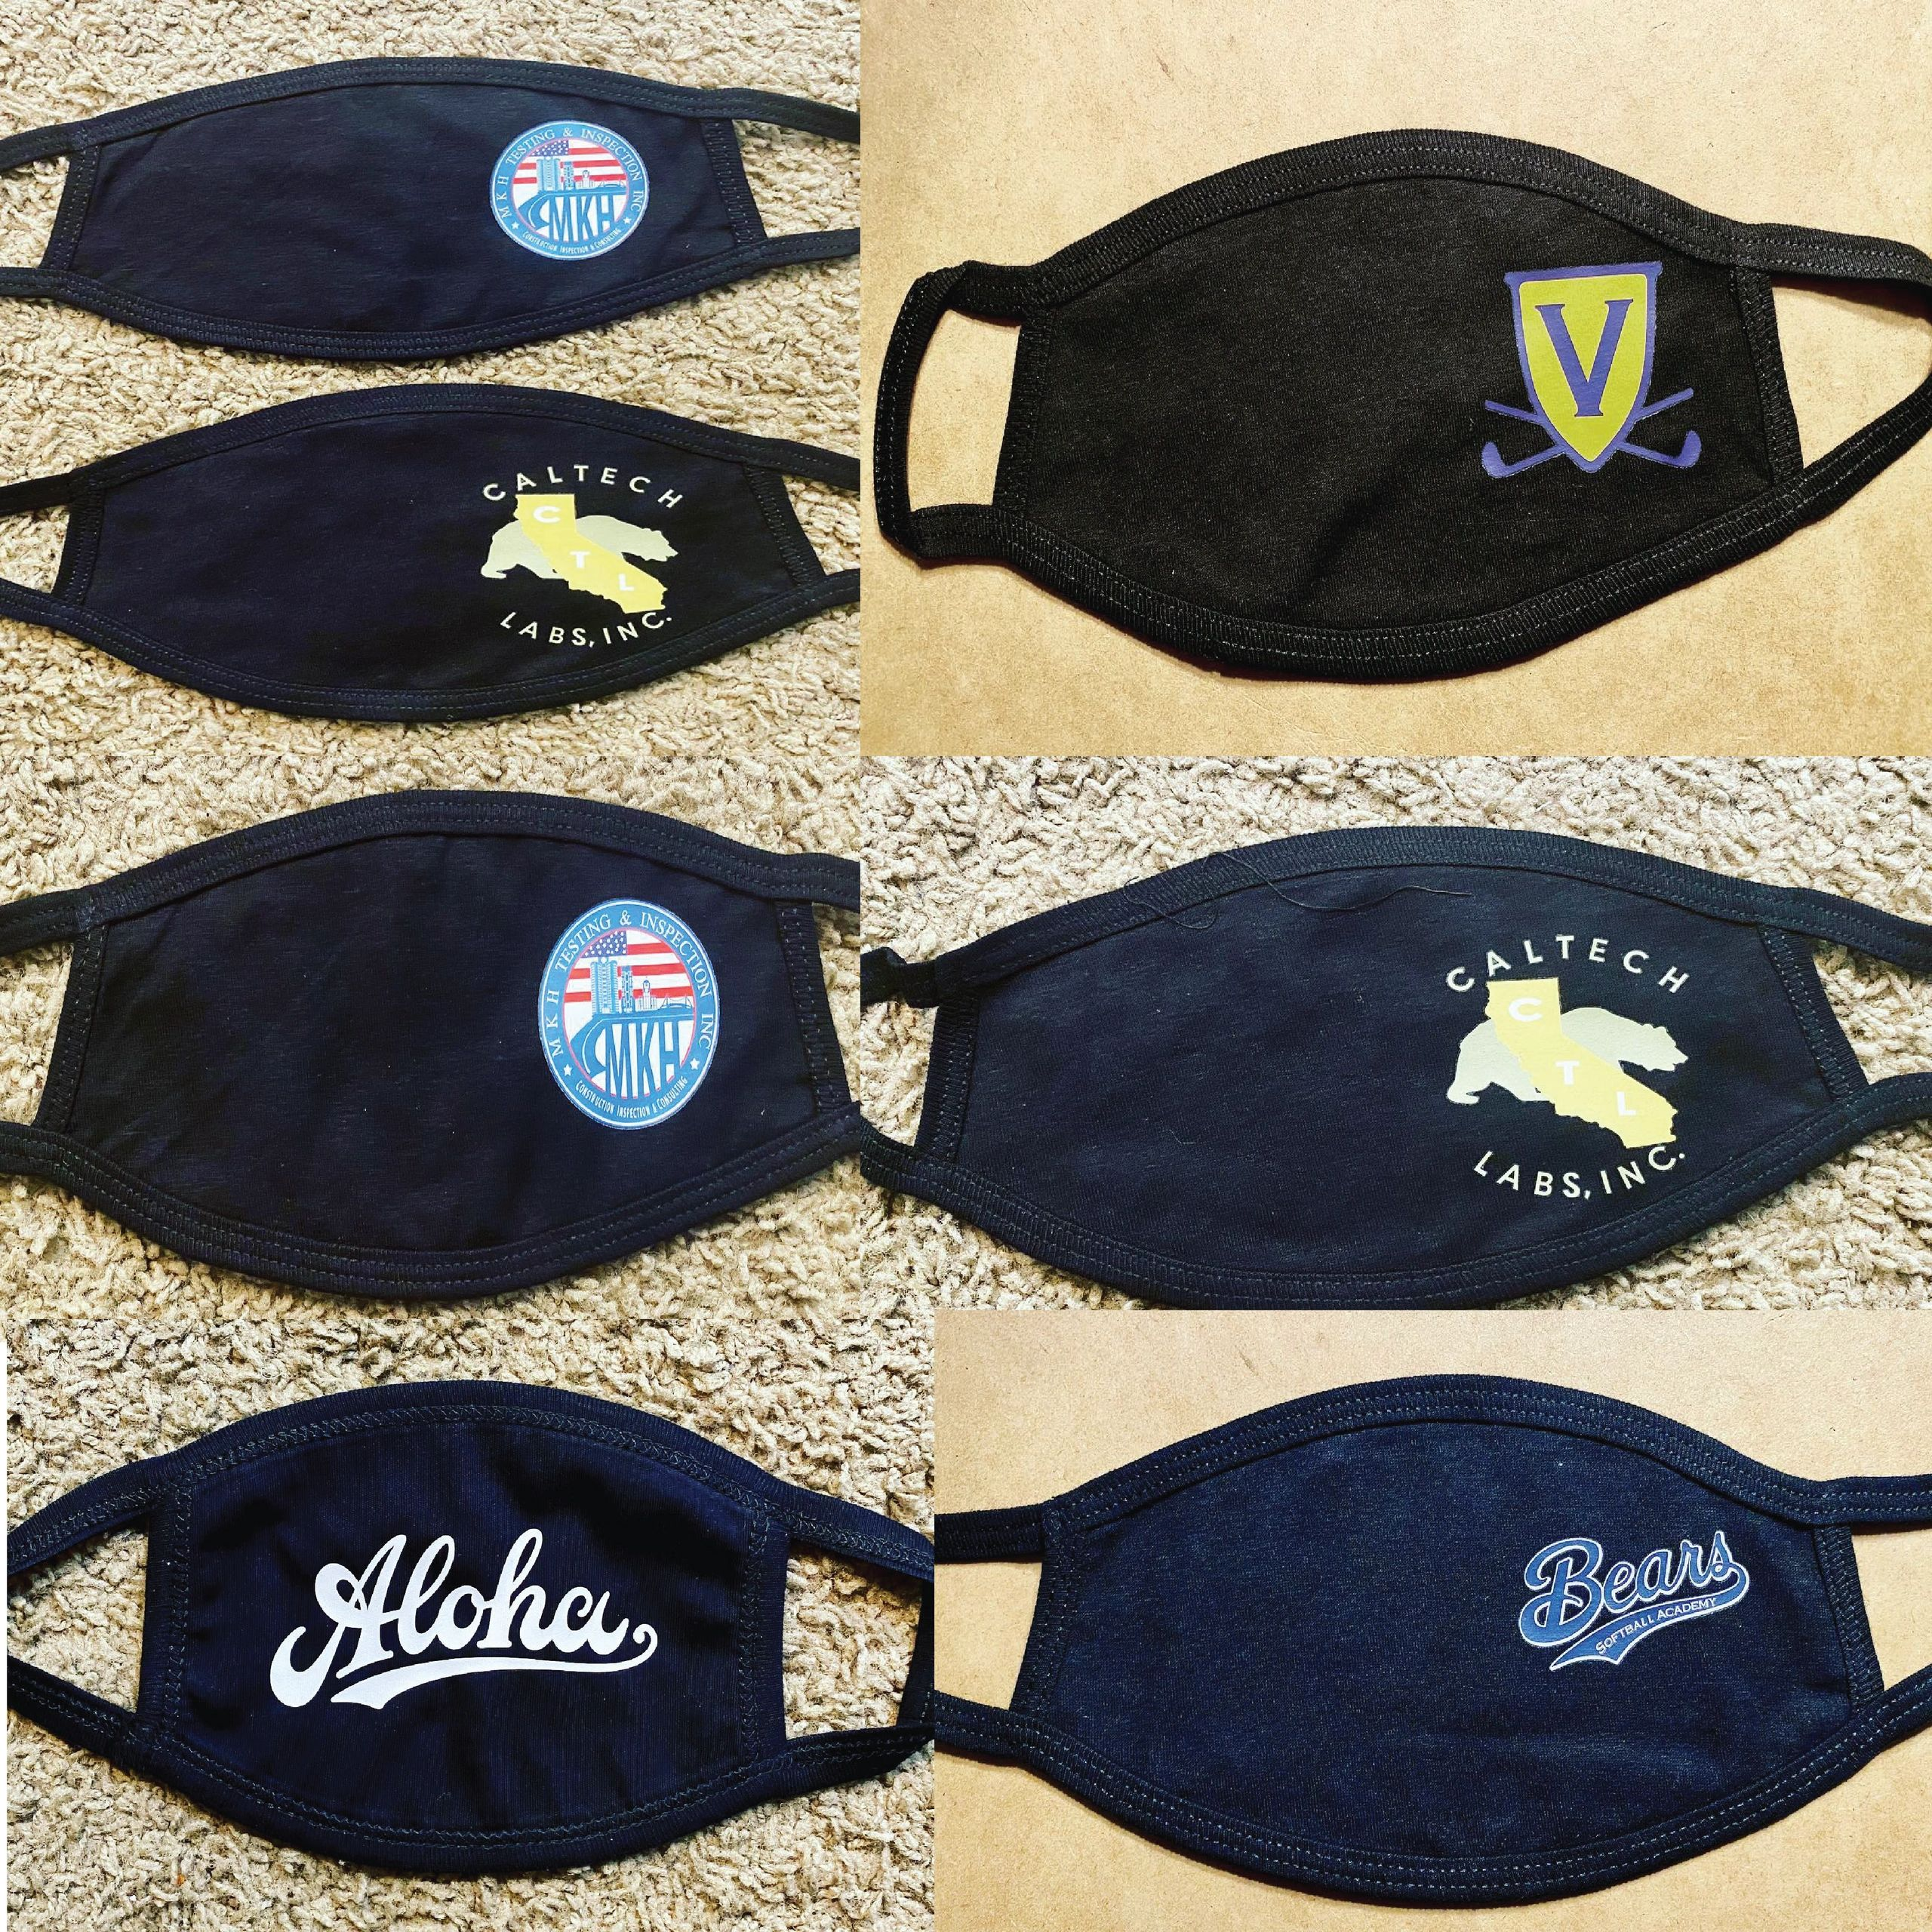 Blank or custom mask designs for businesses or individuals.